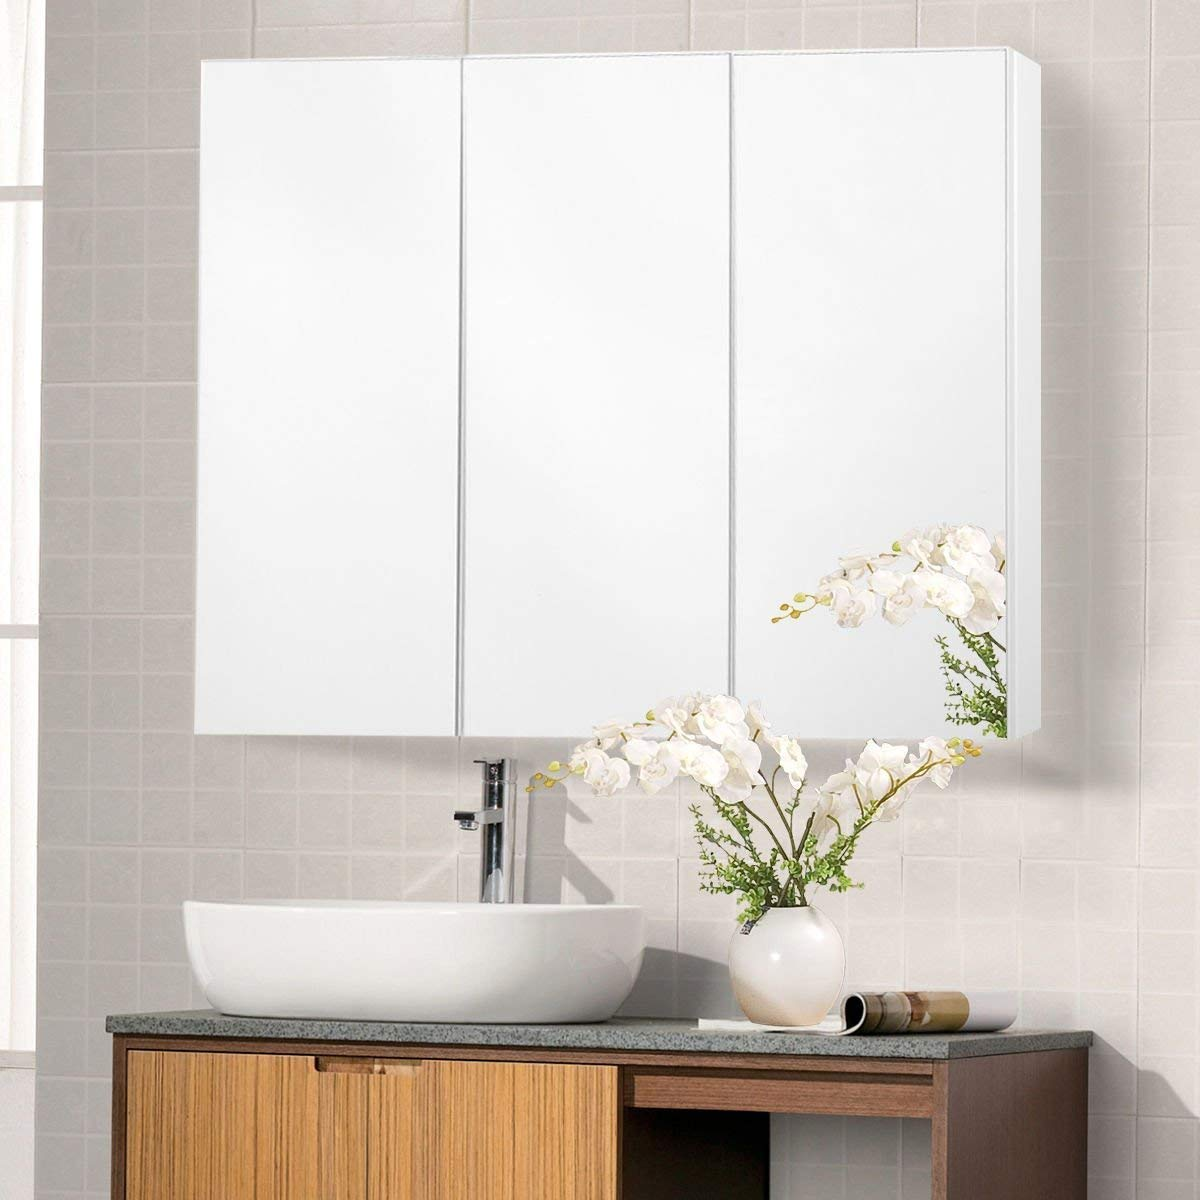 36 Wide Wall Mount Mirrored Bathroom Medicine Cabinet Storage 3 Mirror Door Manufacture Sourcing Agent Services In China